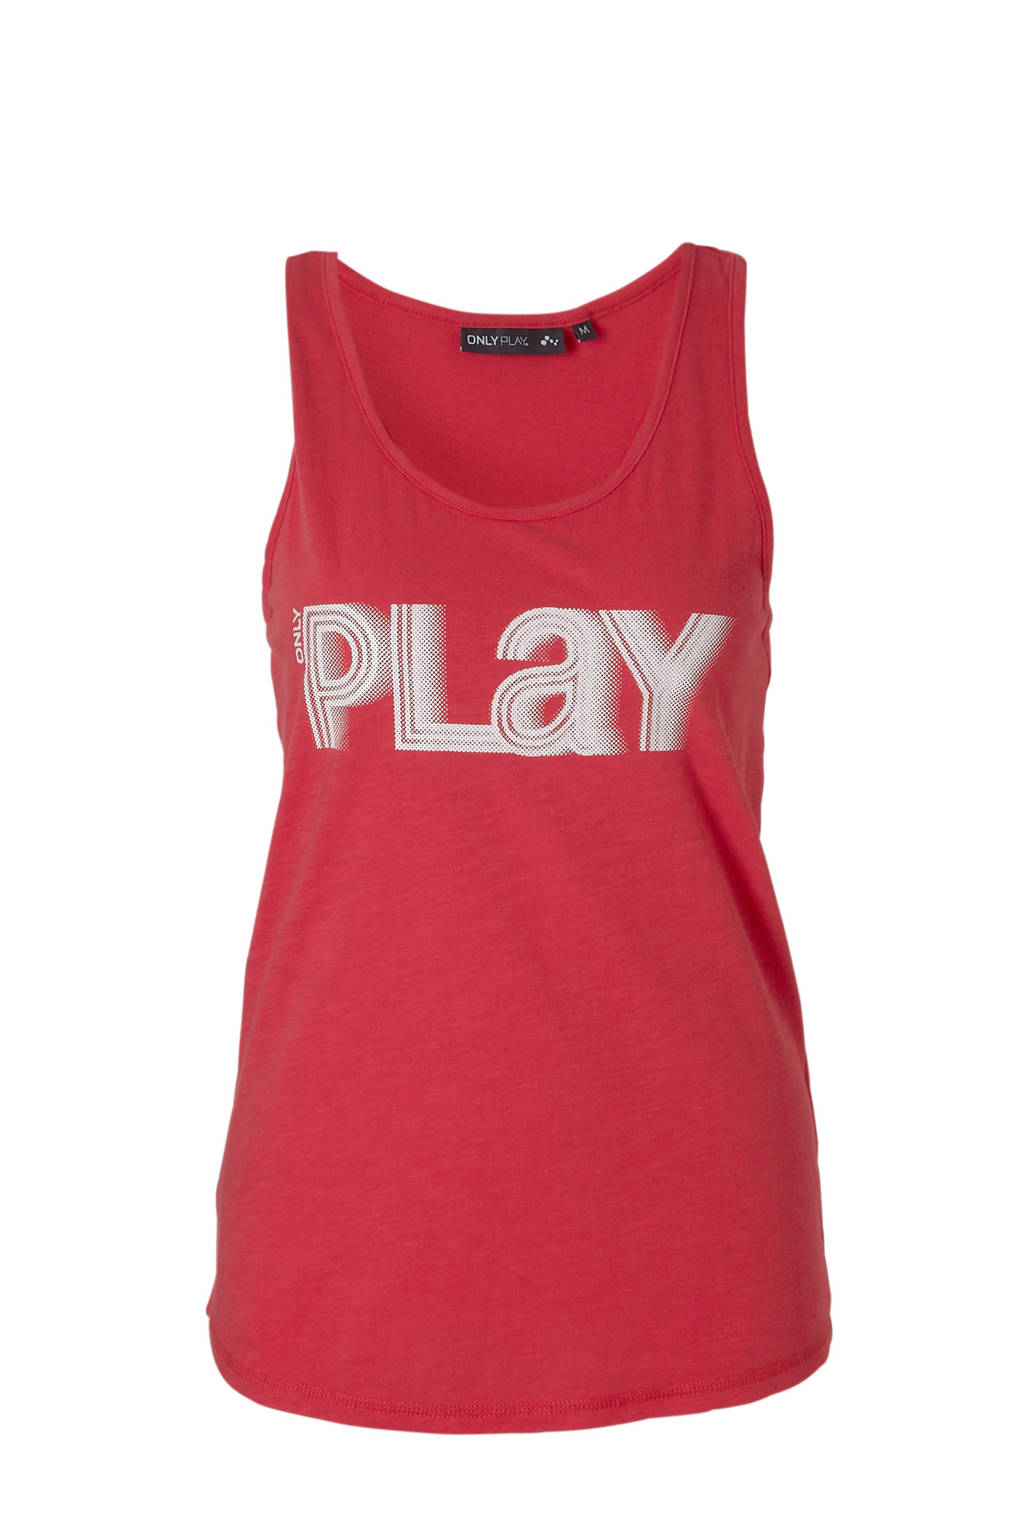 Only Play sporttop roze, Roze/wit